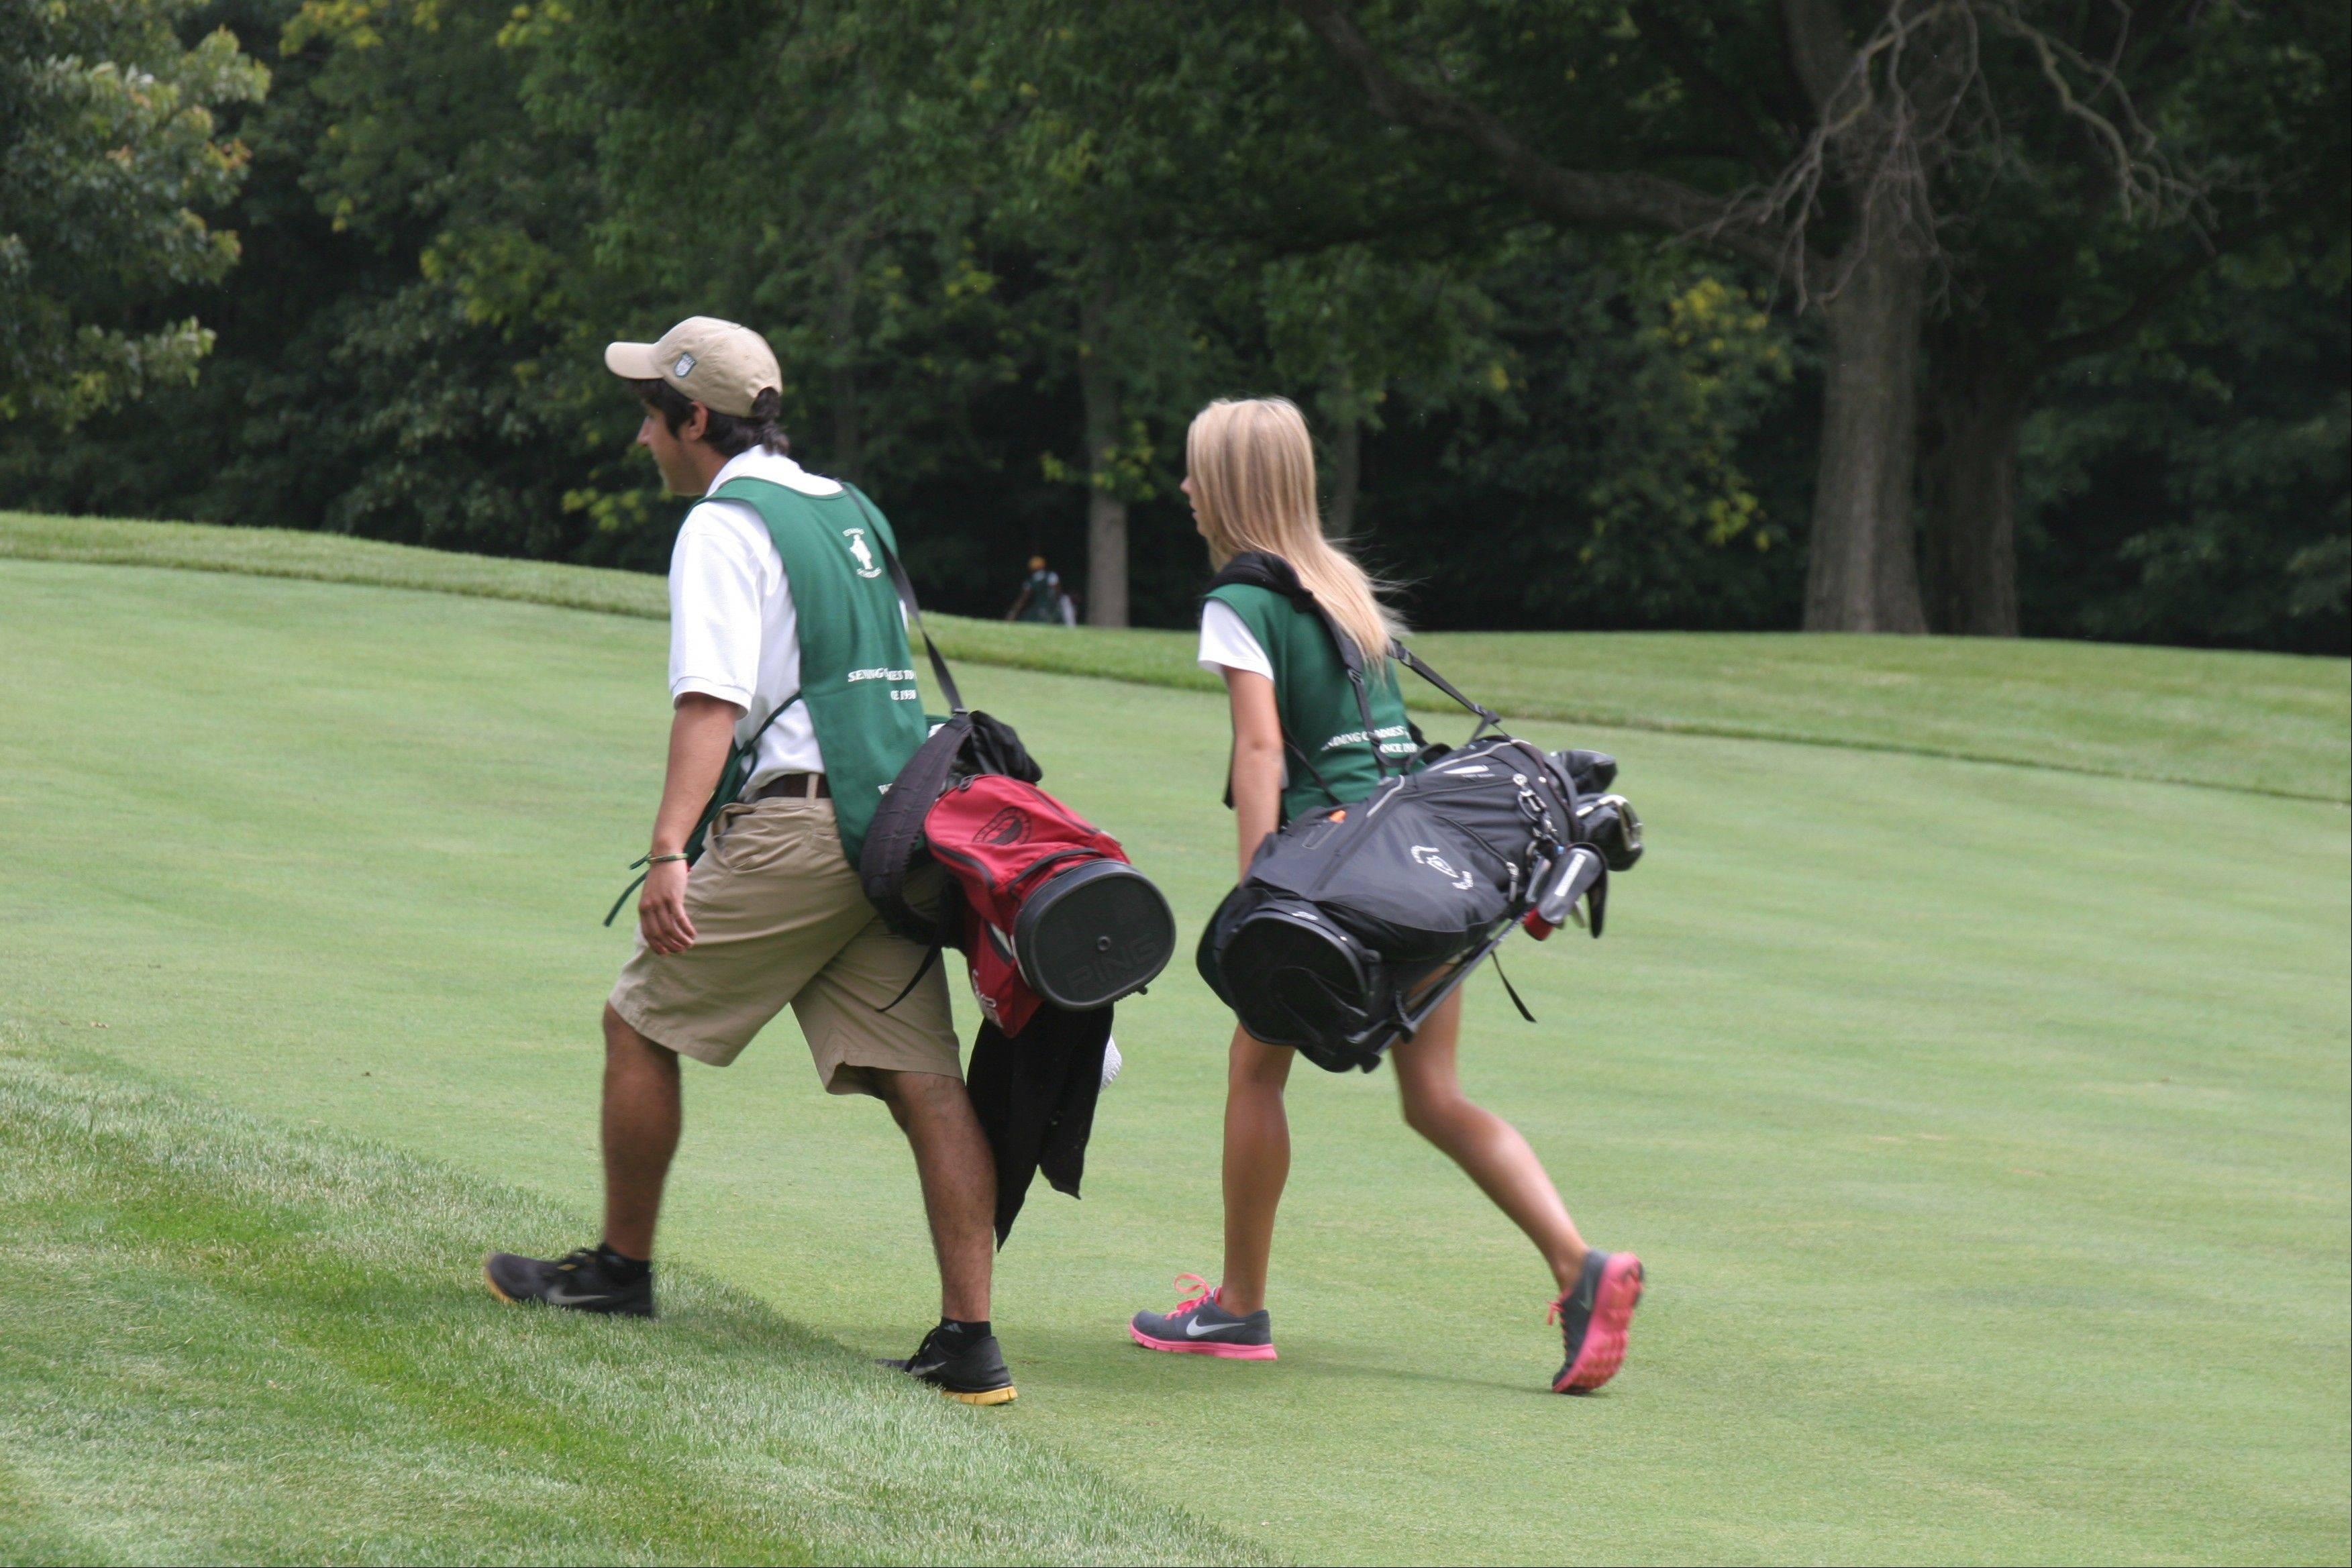 Fundraising efforts and support for this week's BMW Championship at Conway Farms Golf Club will provide support for 240 college cholarships awarded to caddies through the Evans Scholars Foundation.